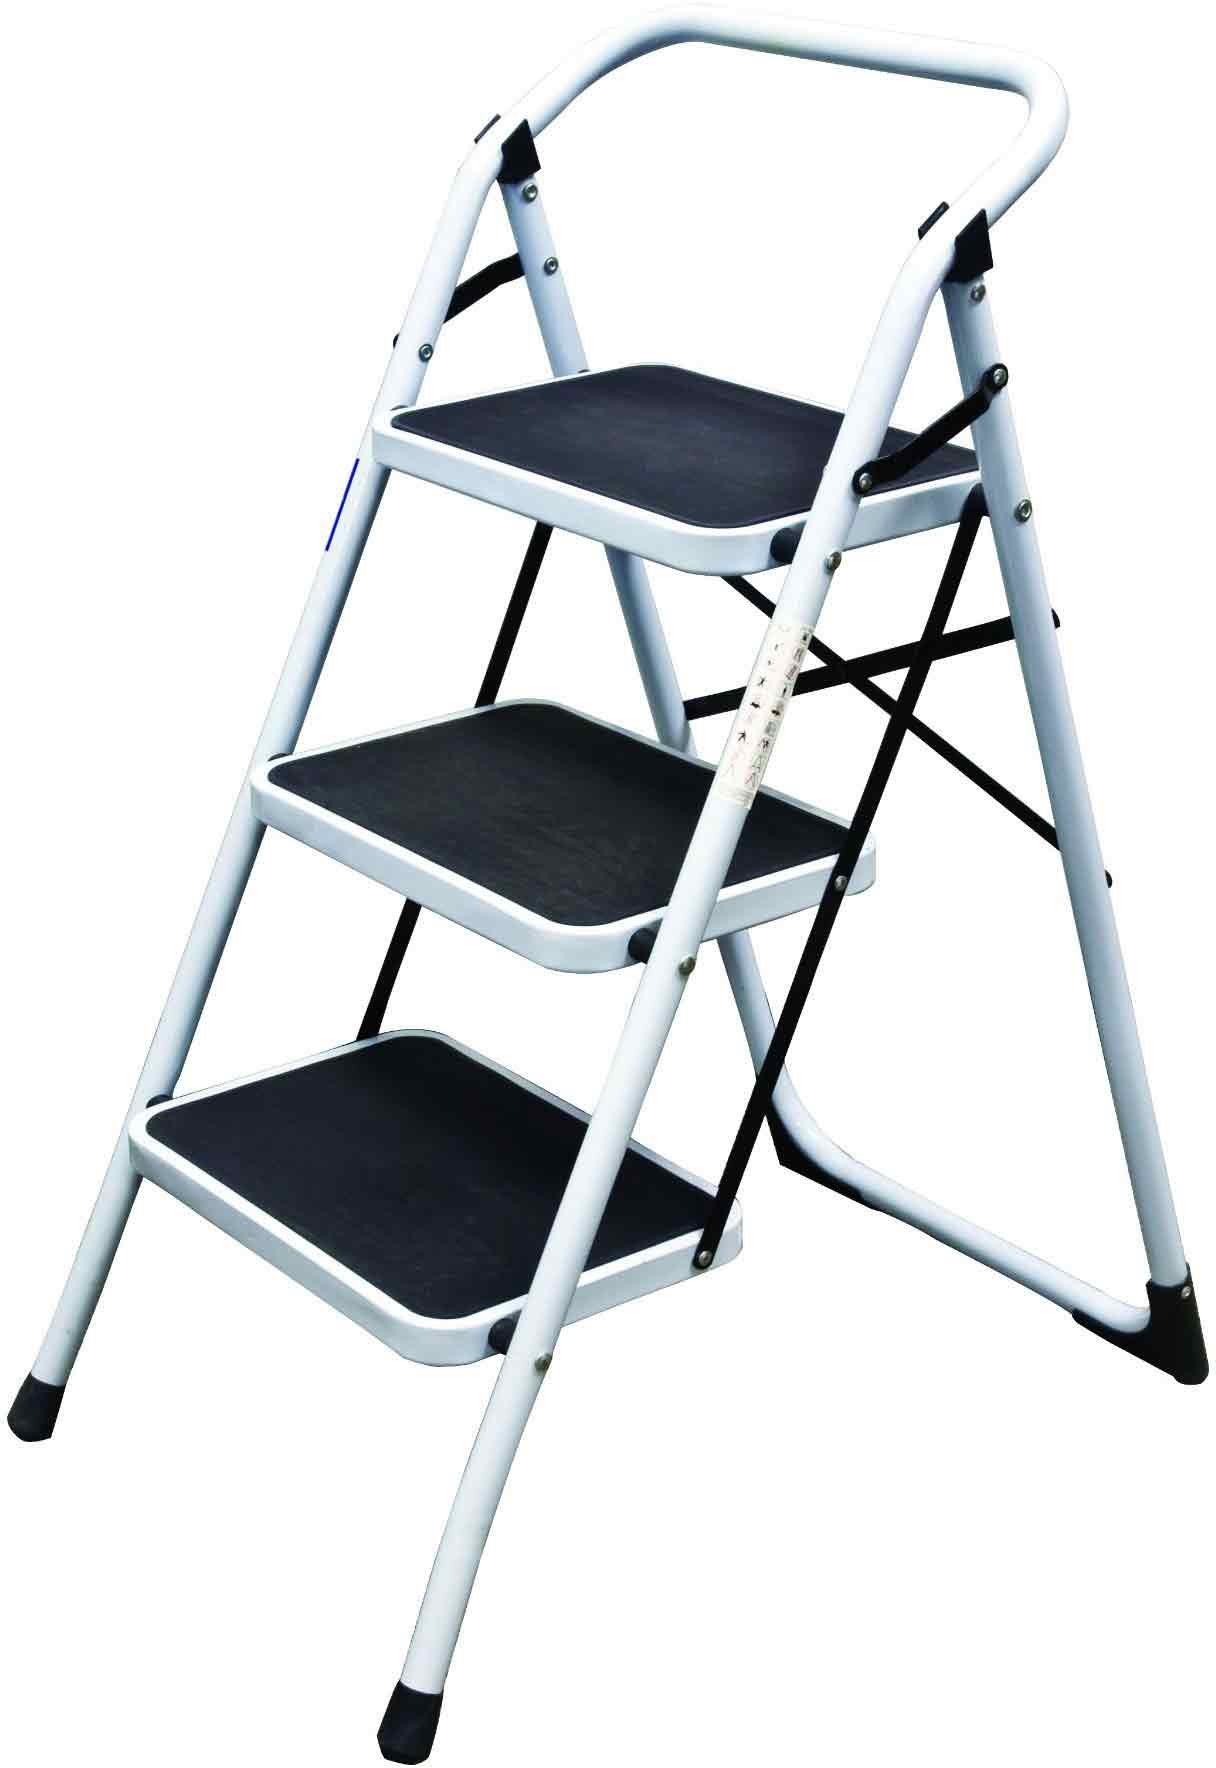 H.B. Smith Tools L3ST Step Ladder